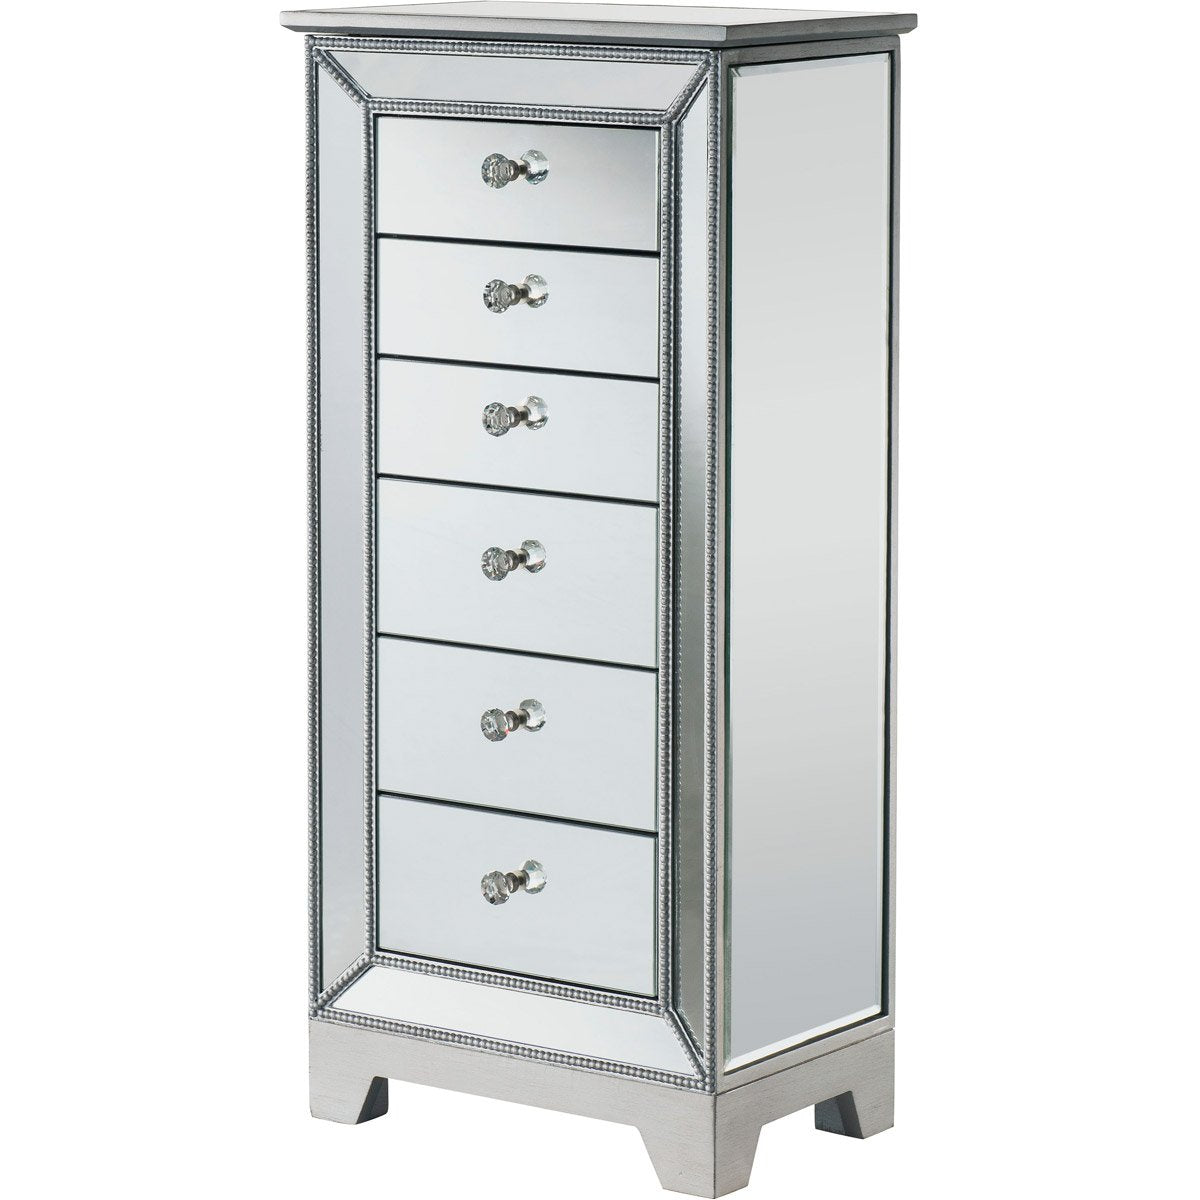 Reflexion 38 6 Drawer Jewelry Armoire - Antique Silver Finish (Mf72003) Armoire